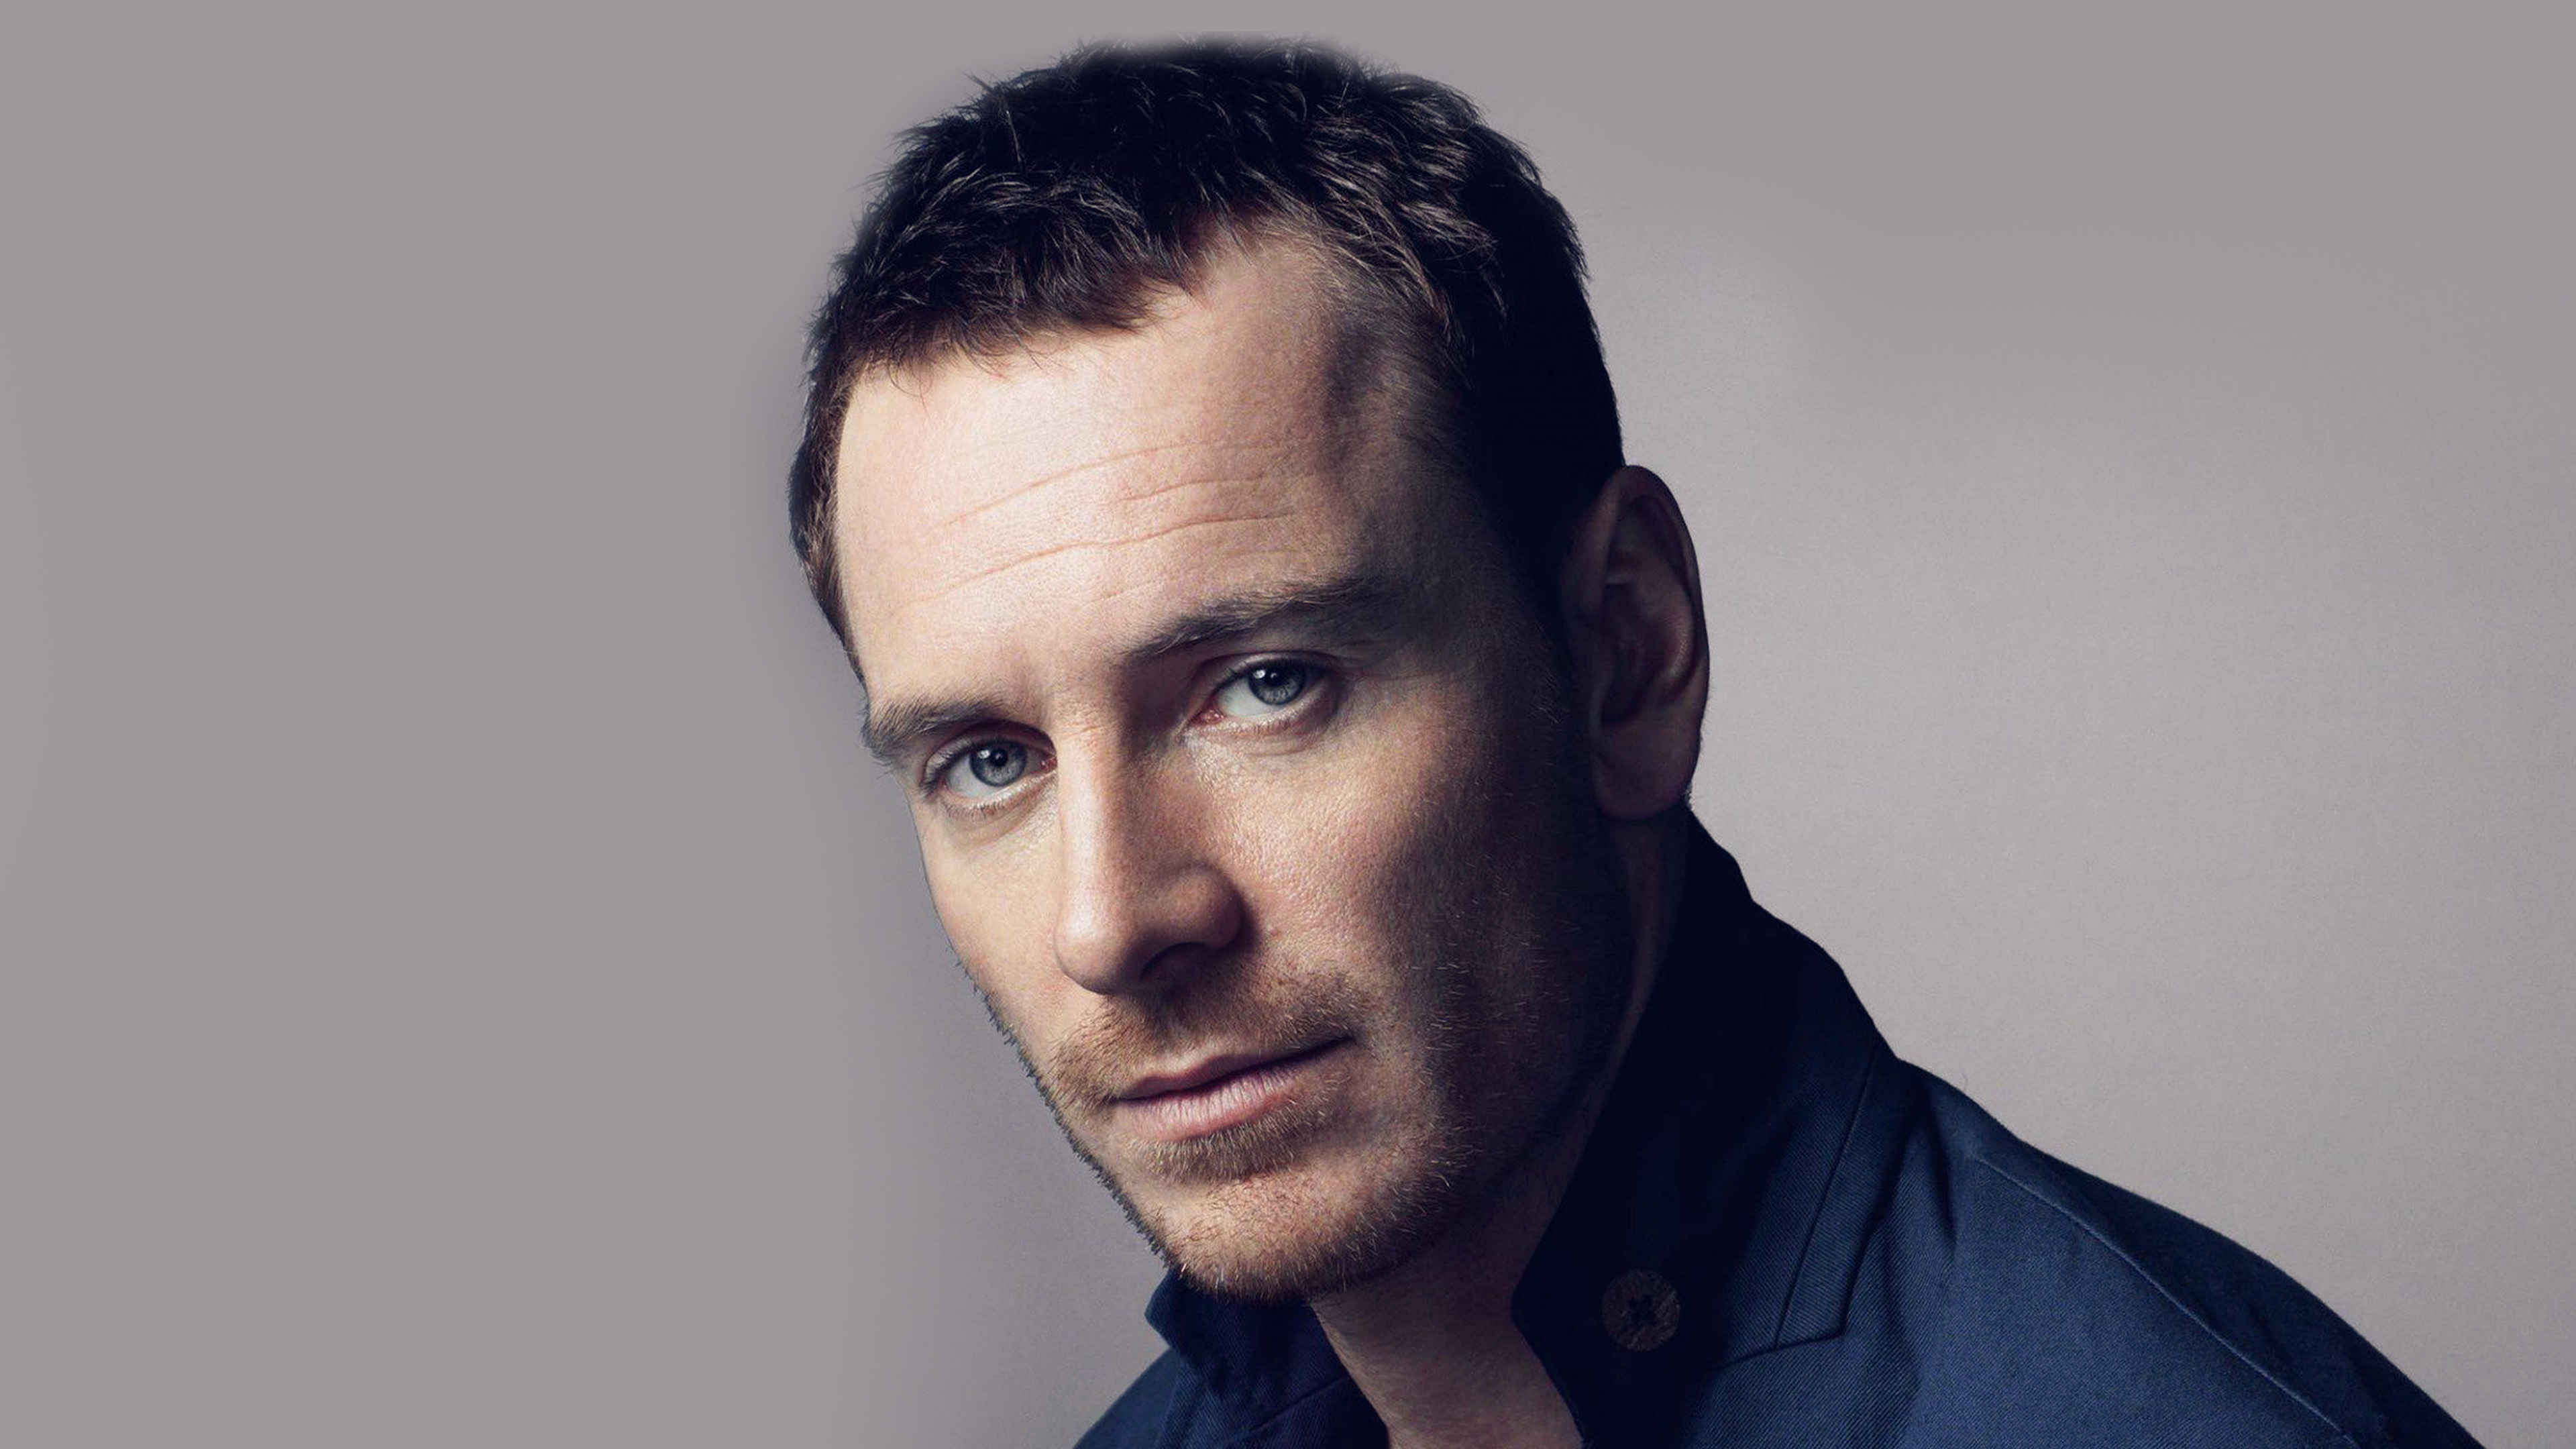 Michael Fassbender For Desktop Background